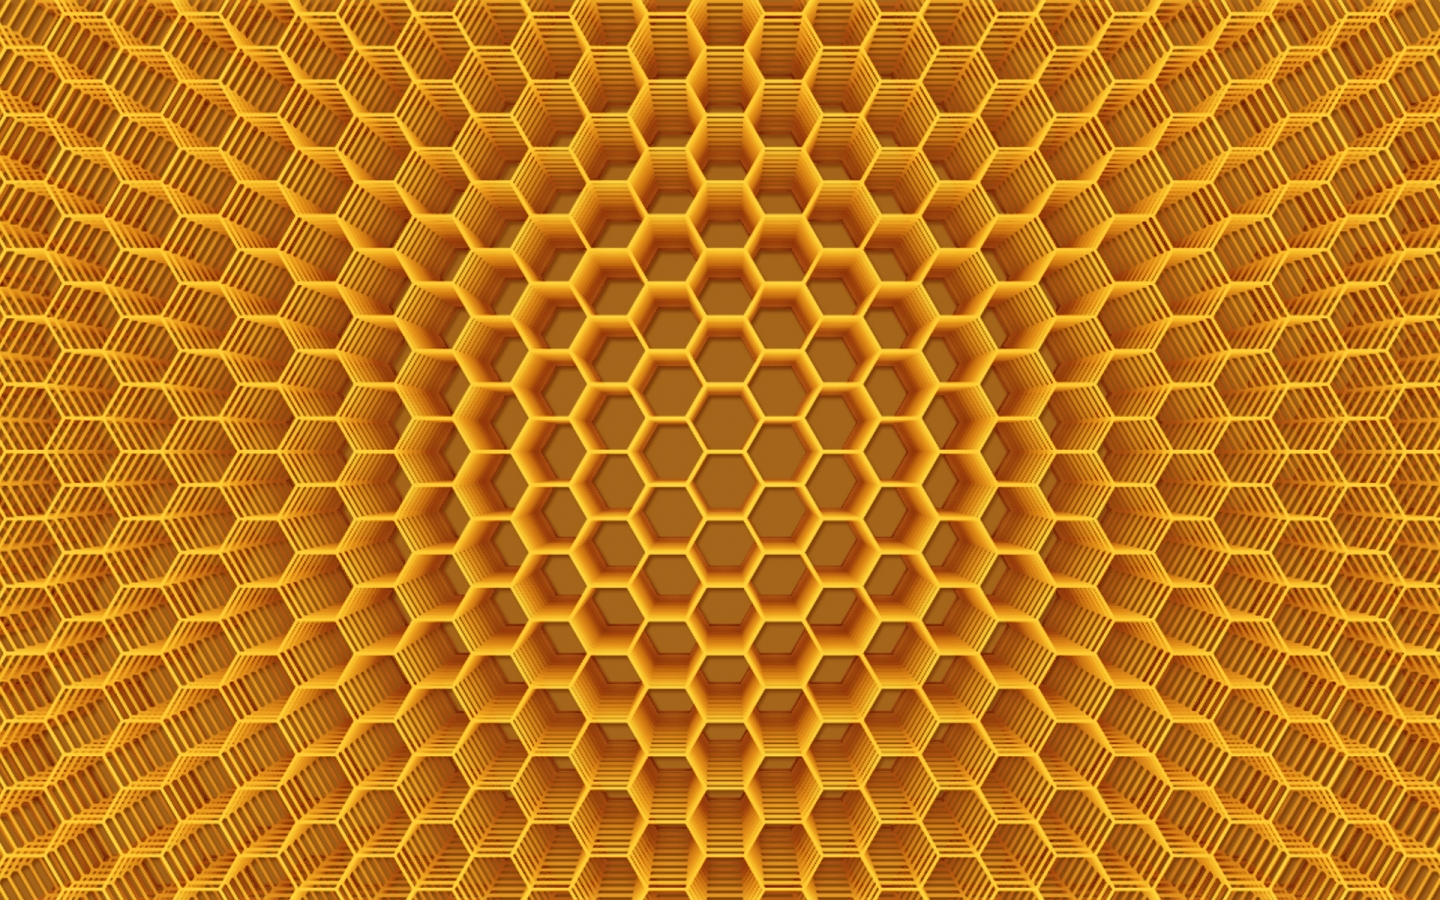 Abstract Honeycomb Structure for 1440 x 900 widescreen resolution